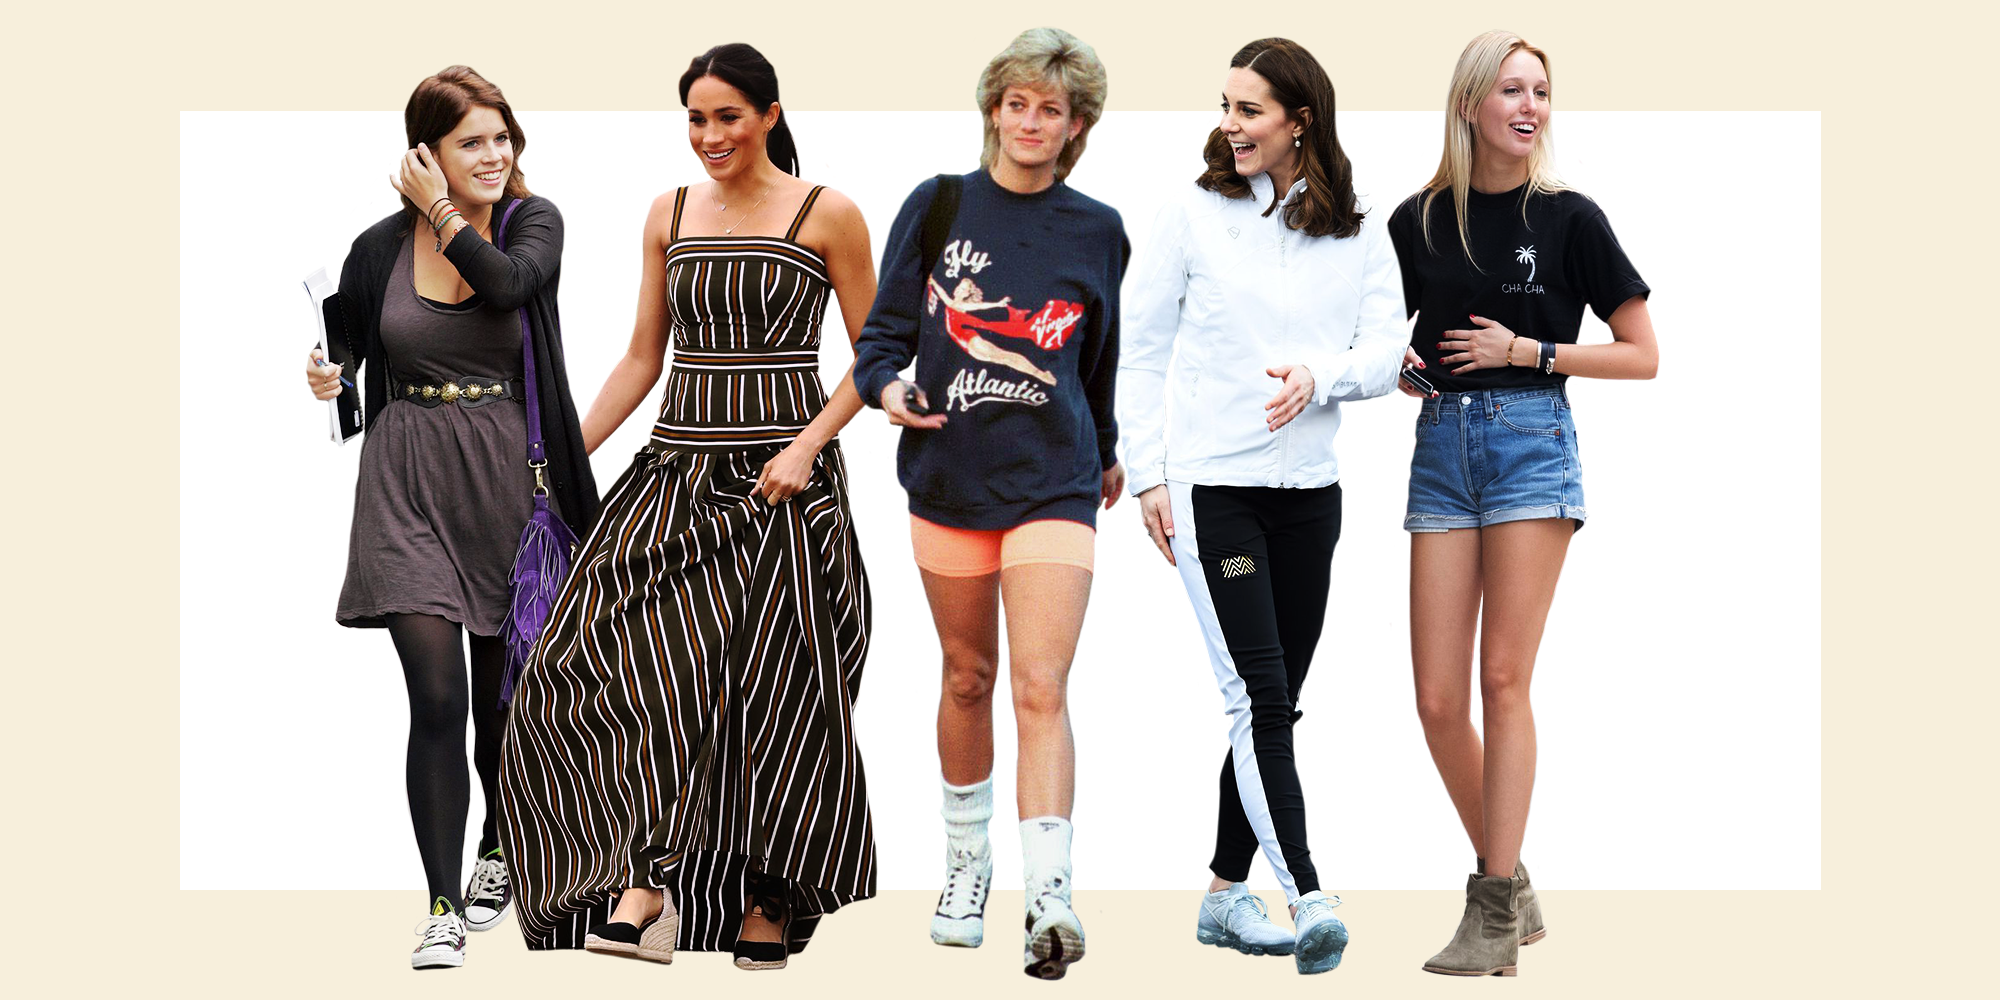 17 Times Royals Dressed Down In The Most Casual Outfits